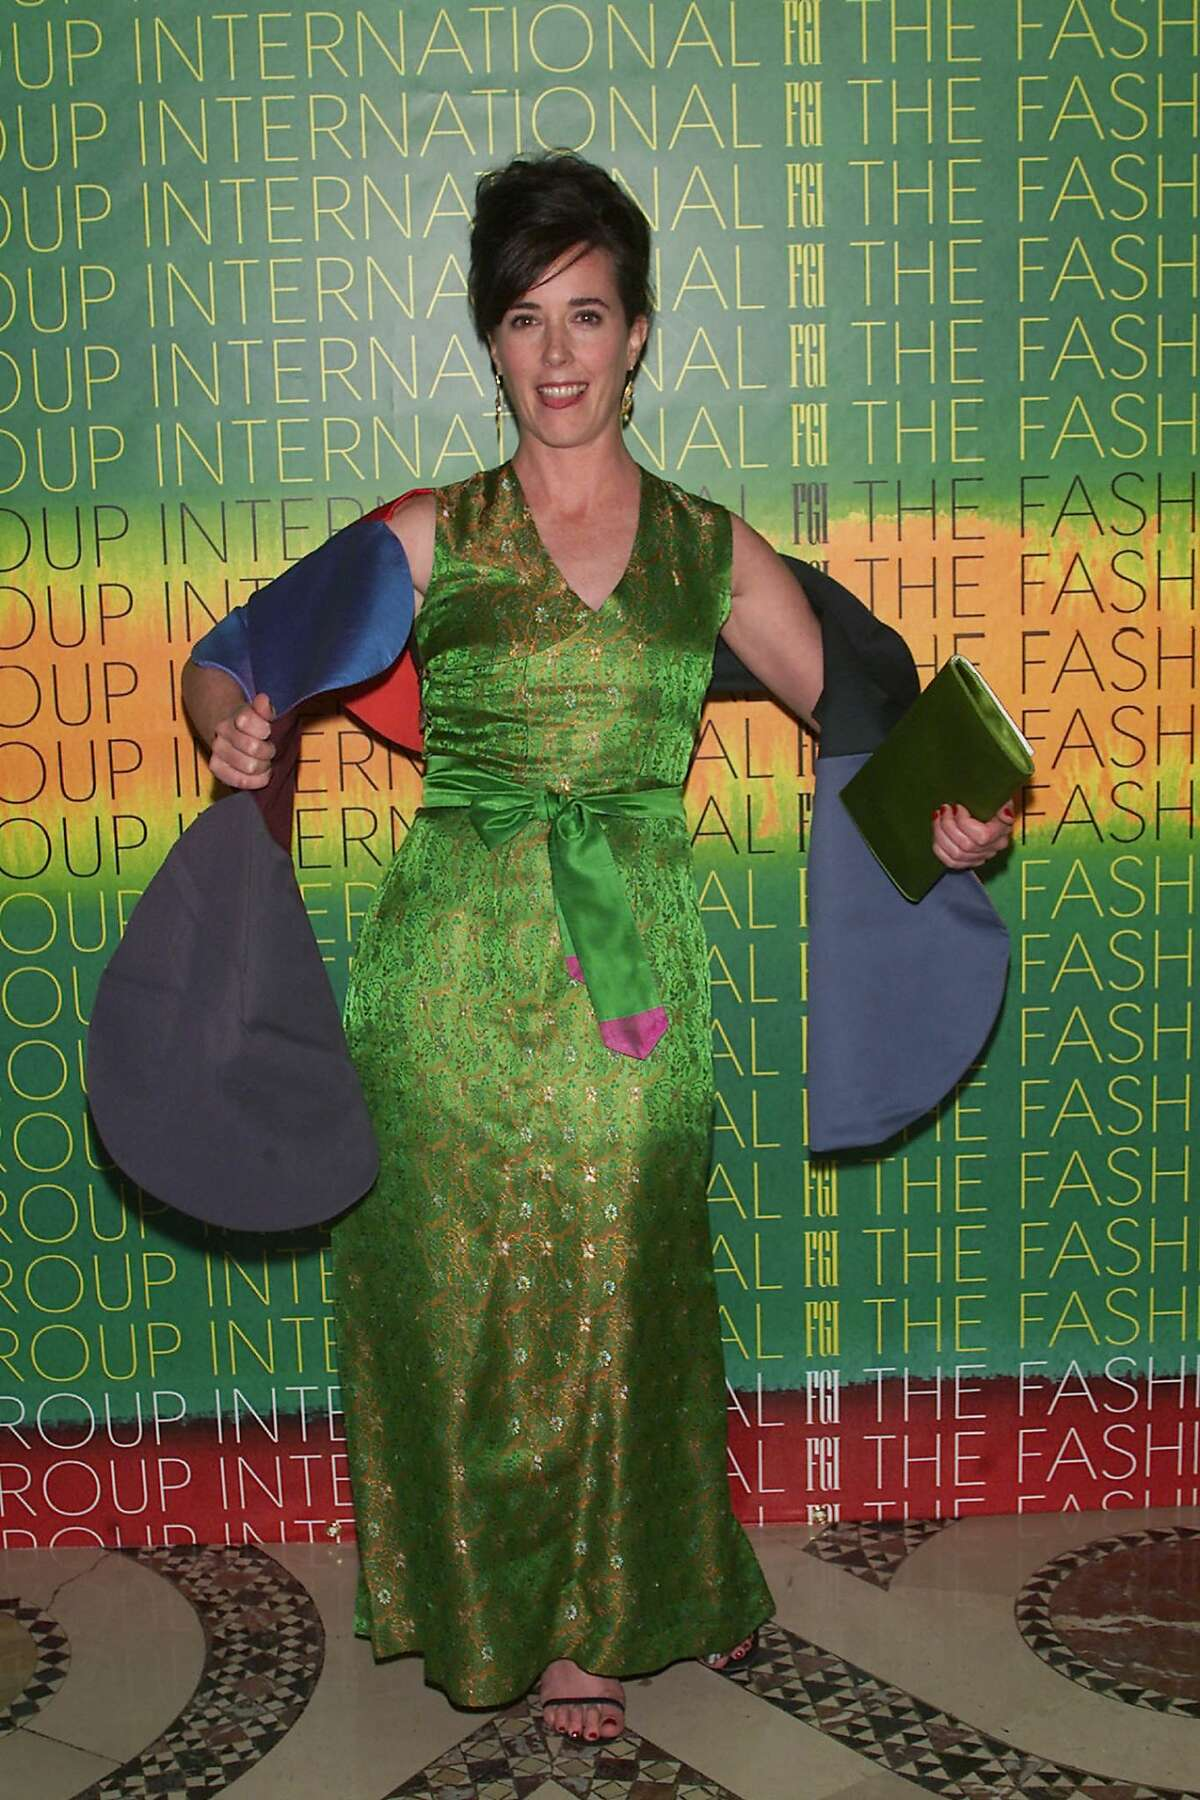 Spade at The Fashion Group International 'Night Of Stars 2001: Dynasty - Generations of Design' awards gala at Cipriani 42nd St. in New York City. 10/24/2001. Photo: Evan Agostini/ImageDirect.